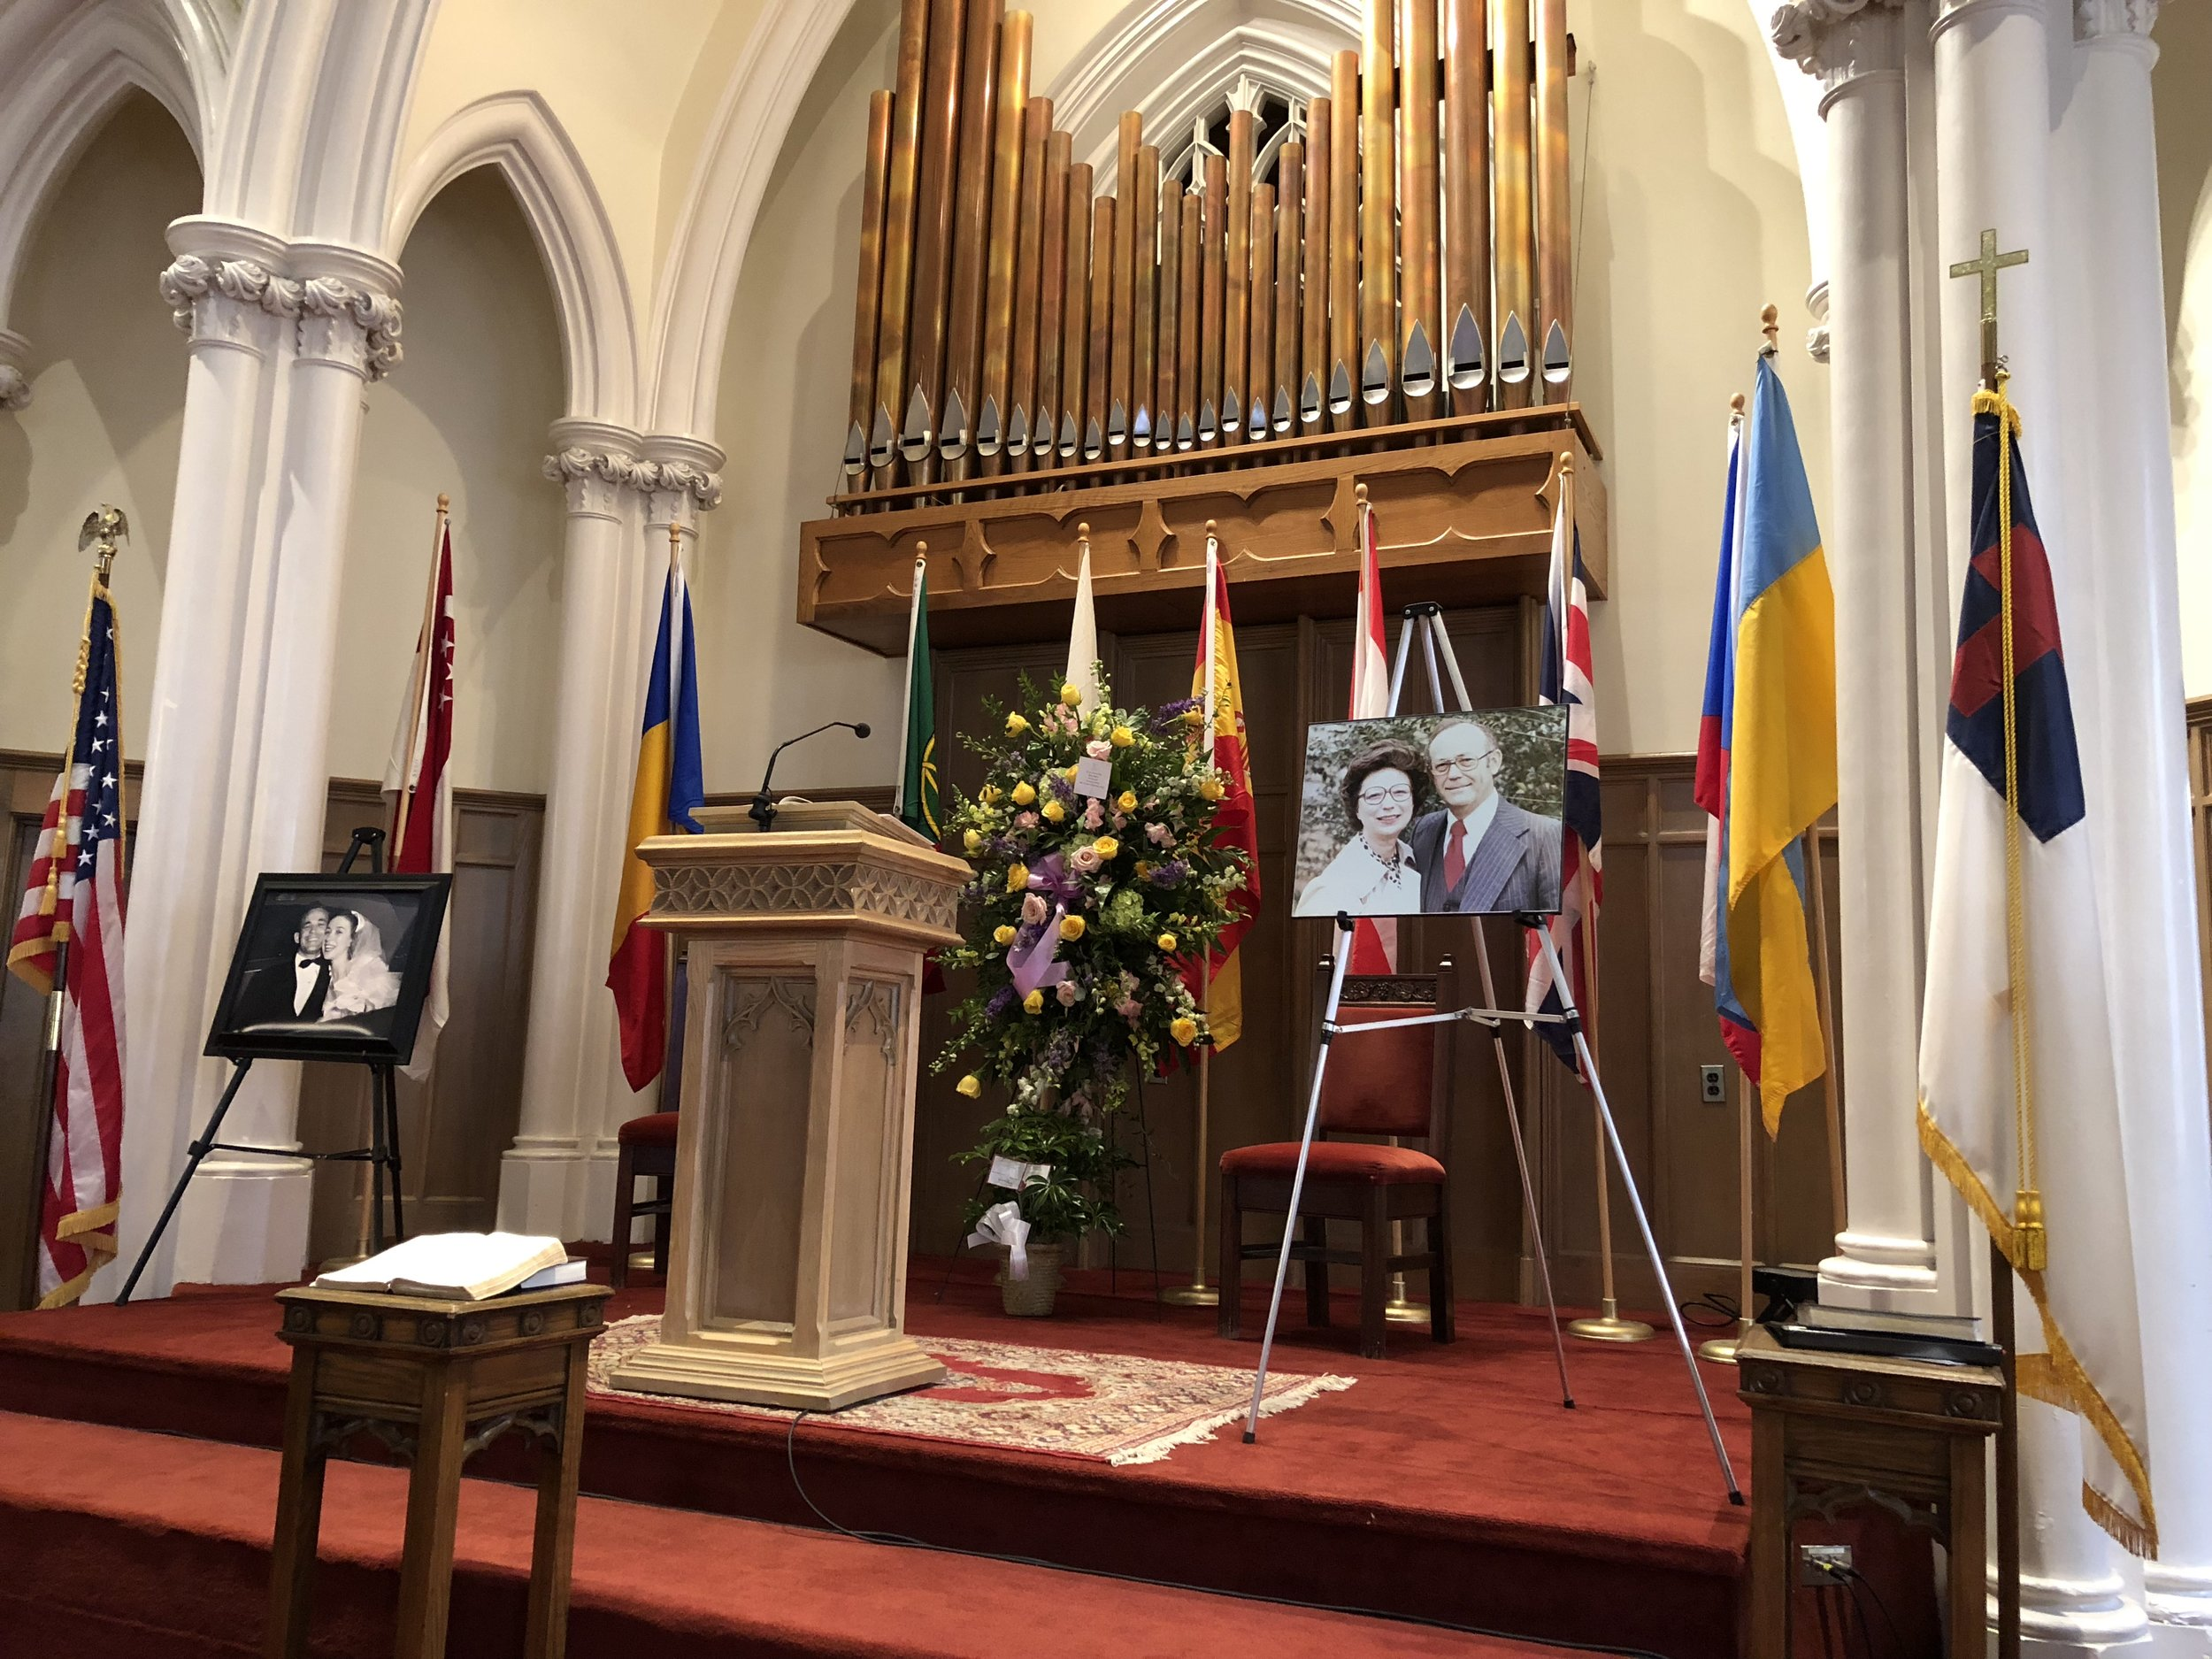 Flags of the nations were on display at Betty Malone's funeral, symbolizing her love for the nations and passion for the Great Commission.